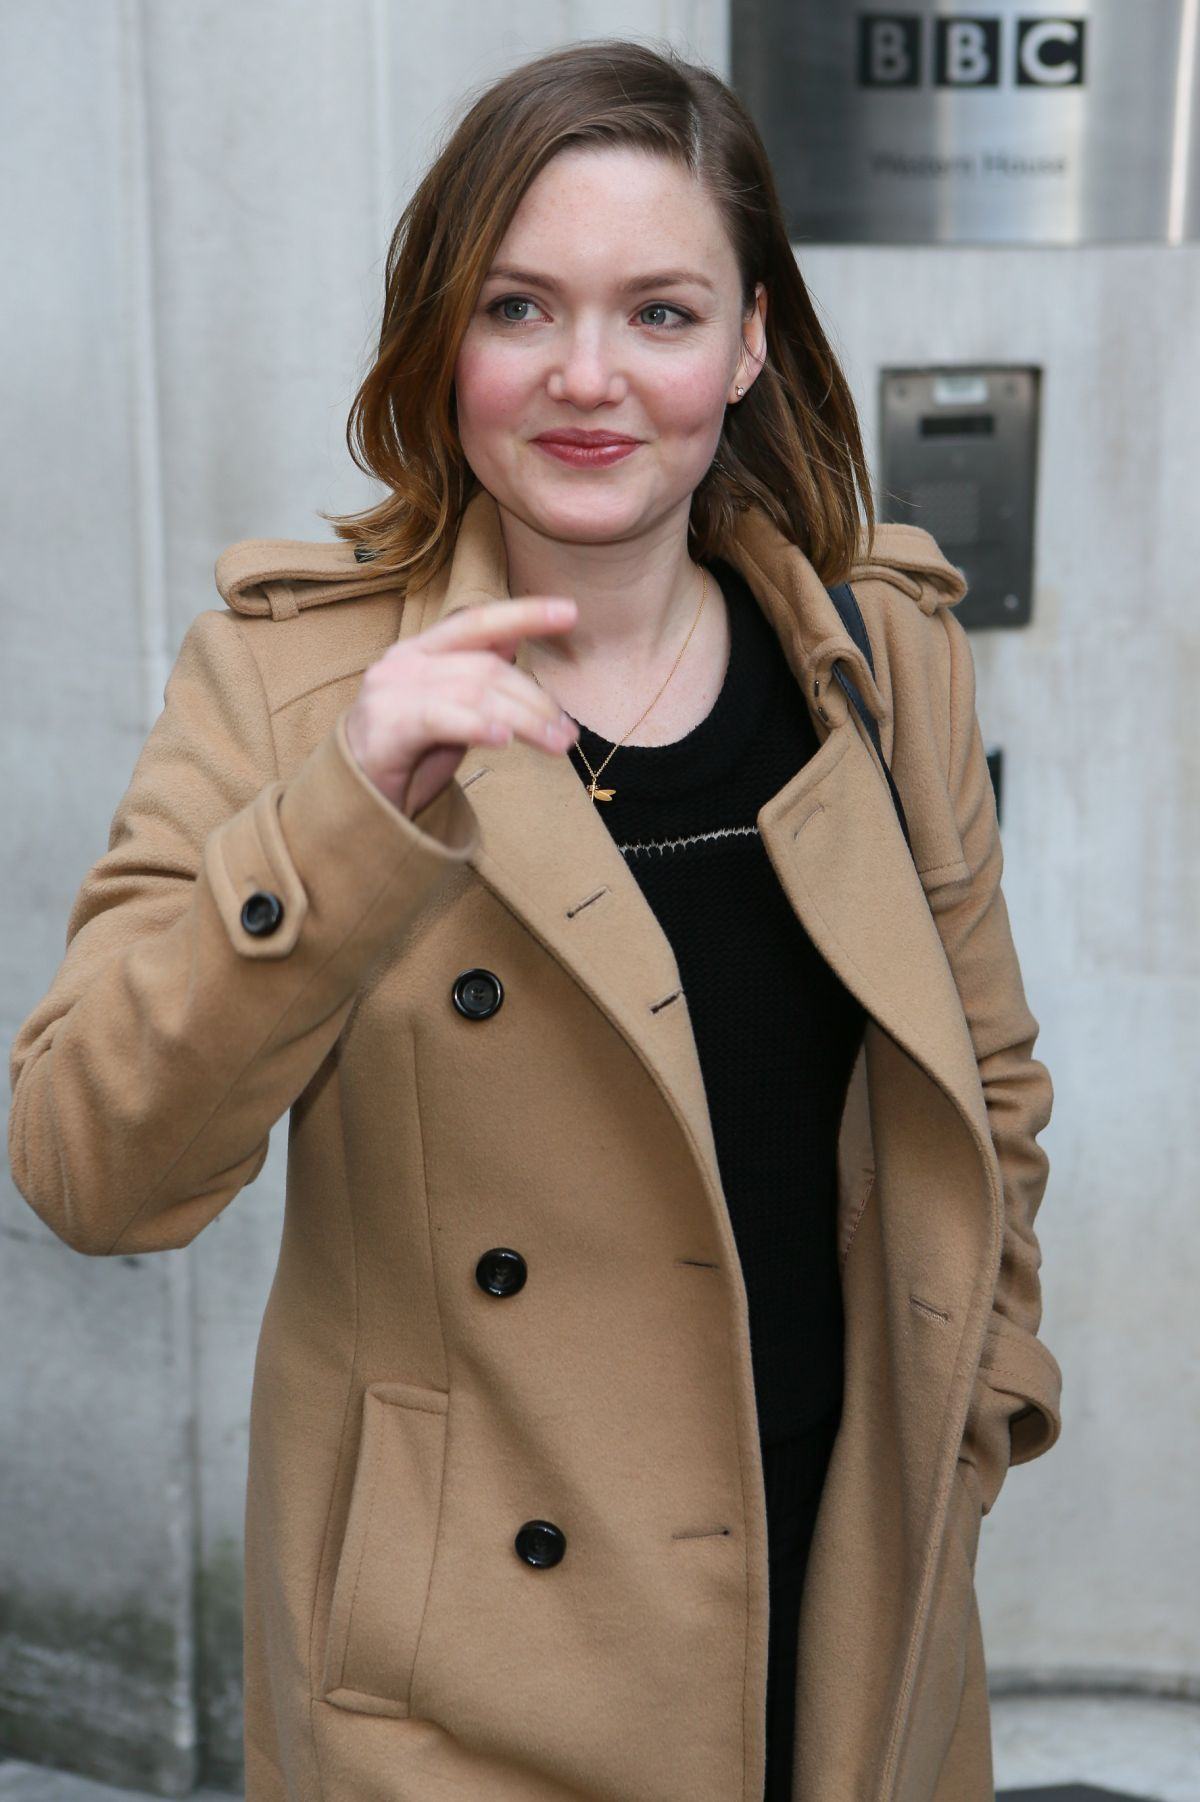 HOLLIDAY GRAINGER at BBC Radio 2 Studios in London 02/12/2016